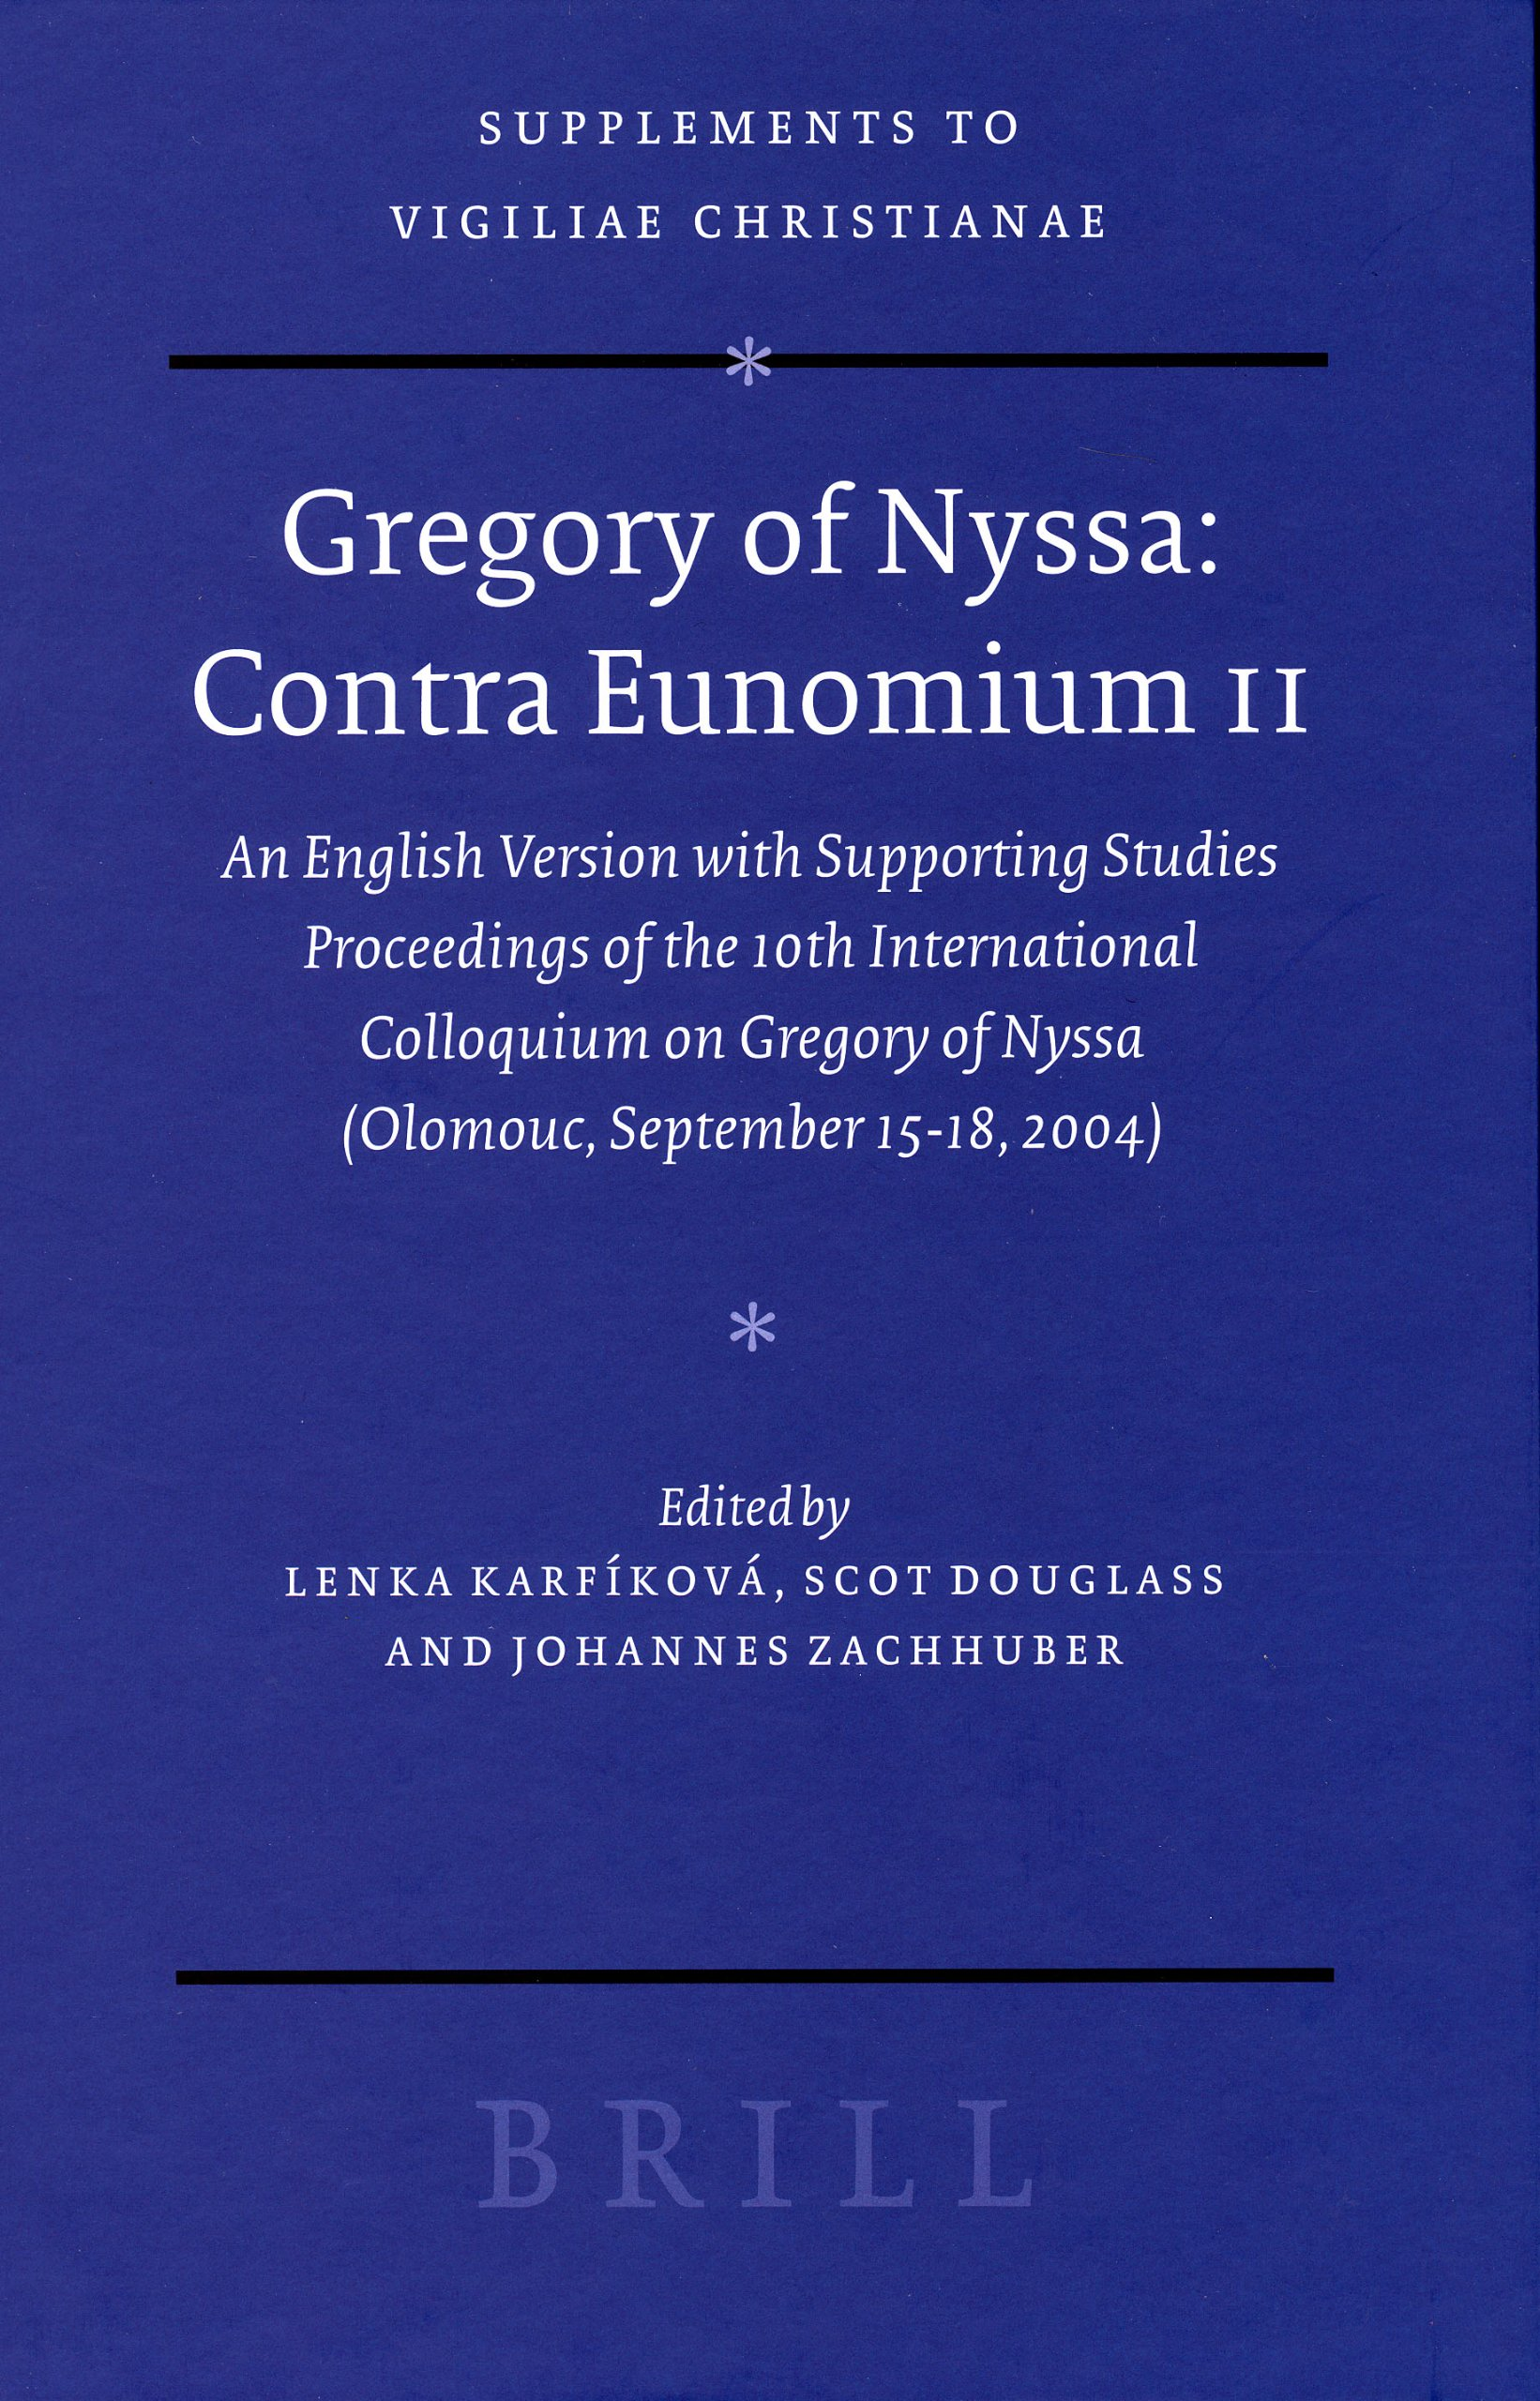 Read Online Gregory of Nyssa: Contra Eunomium II (Olomouc, September 15-18, 2004) Vol. 82 (v. 2) ebook